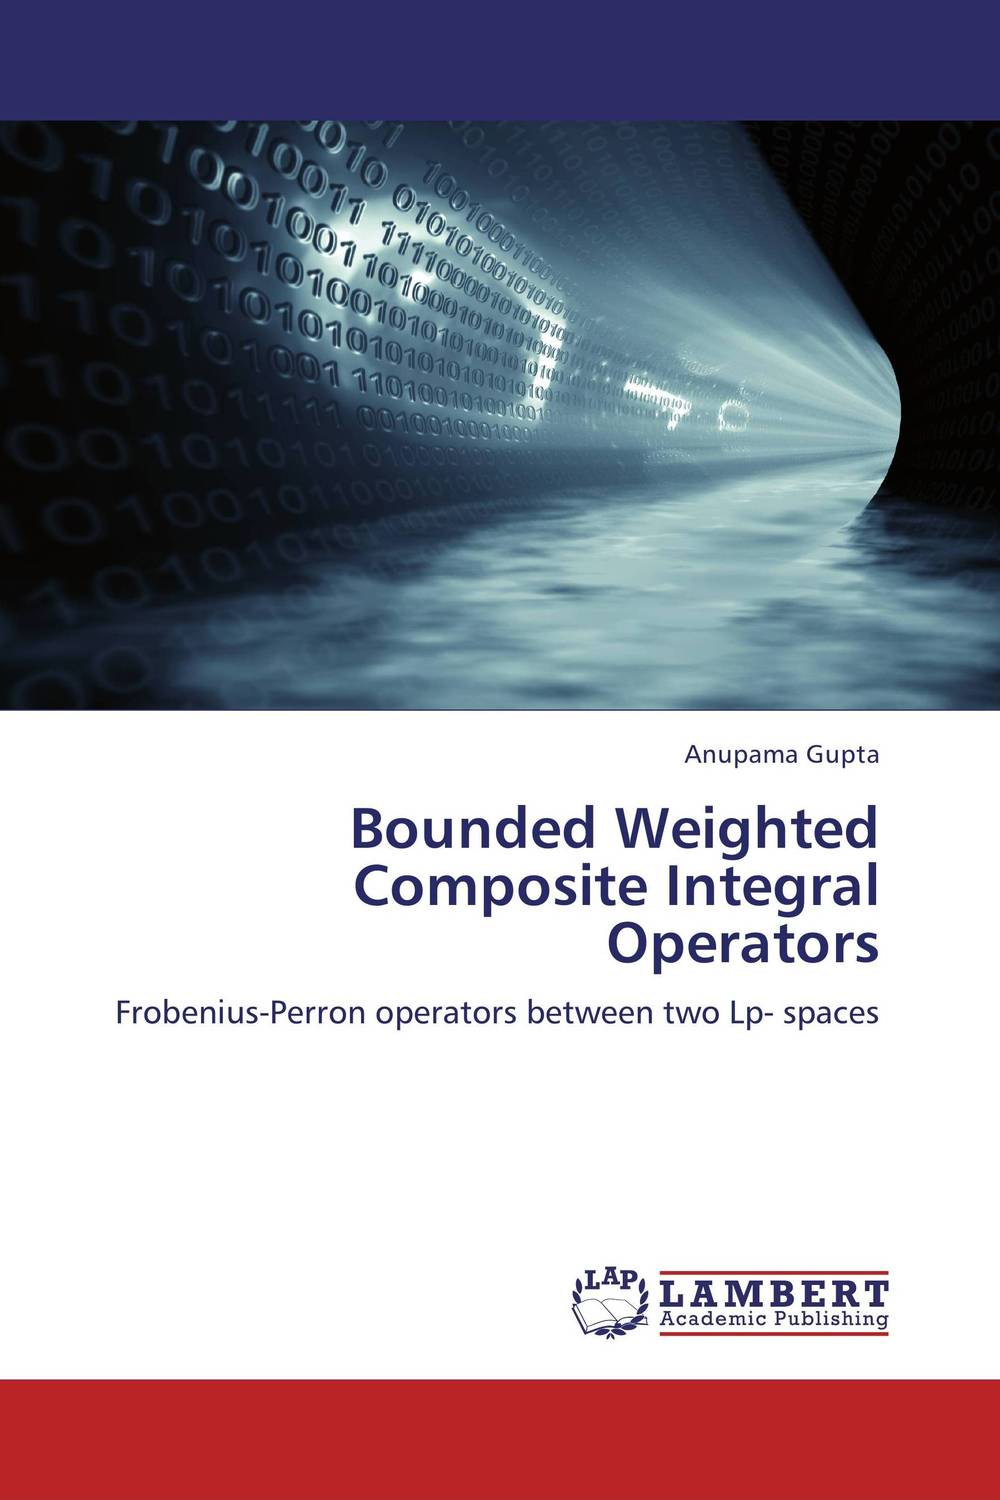 Bounded Weighted Composite Integral Operators